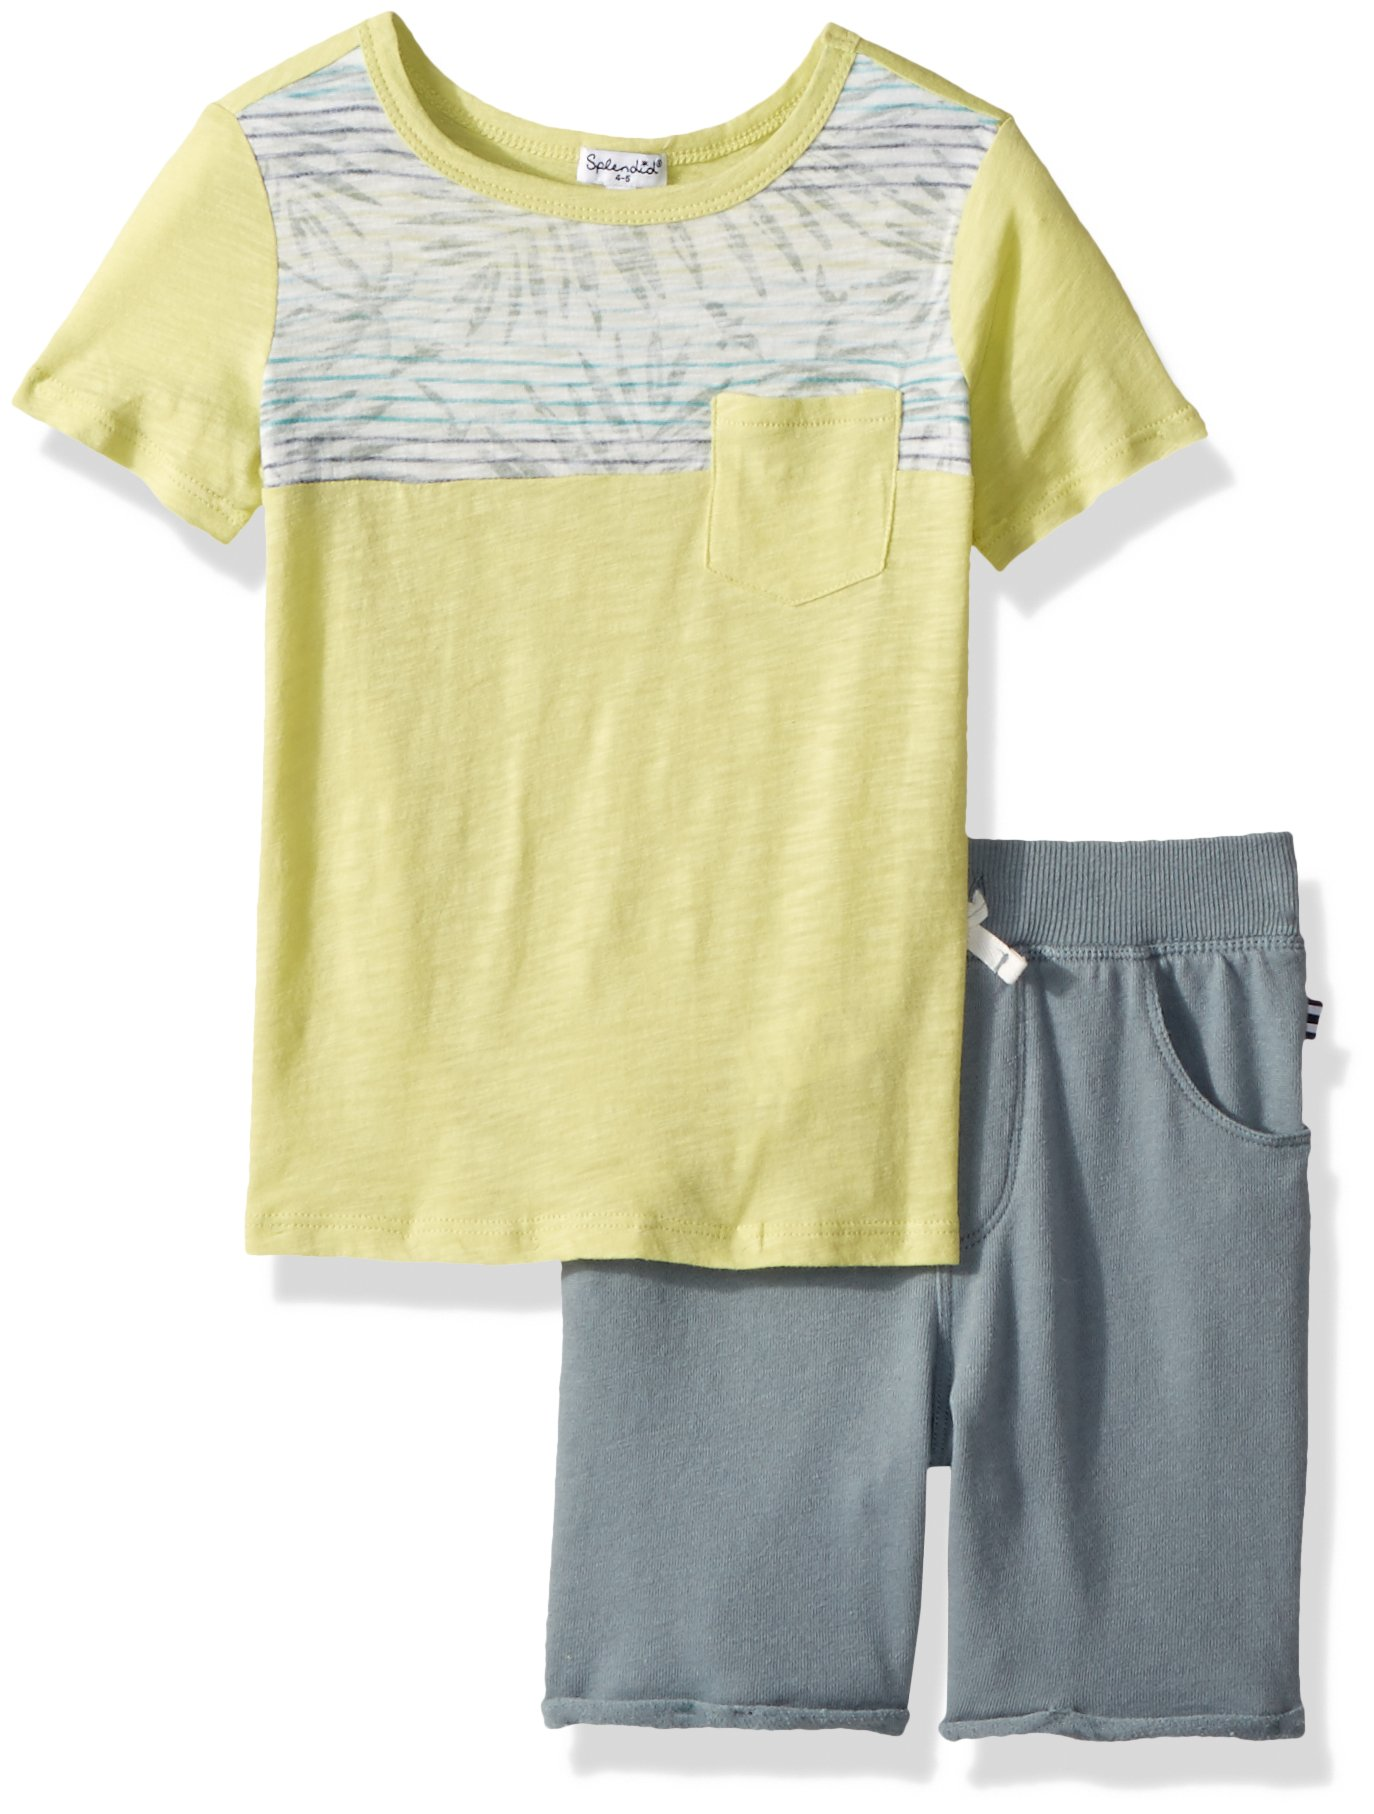 Splendid Toddler Boys' Reverse Print Top Set, Seafern, 4T